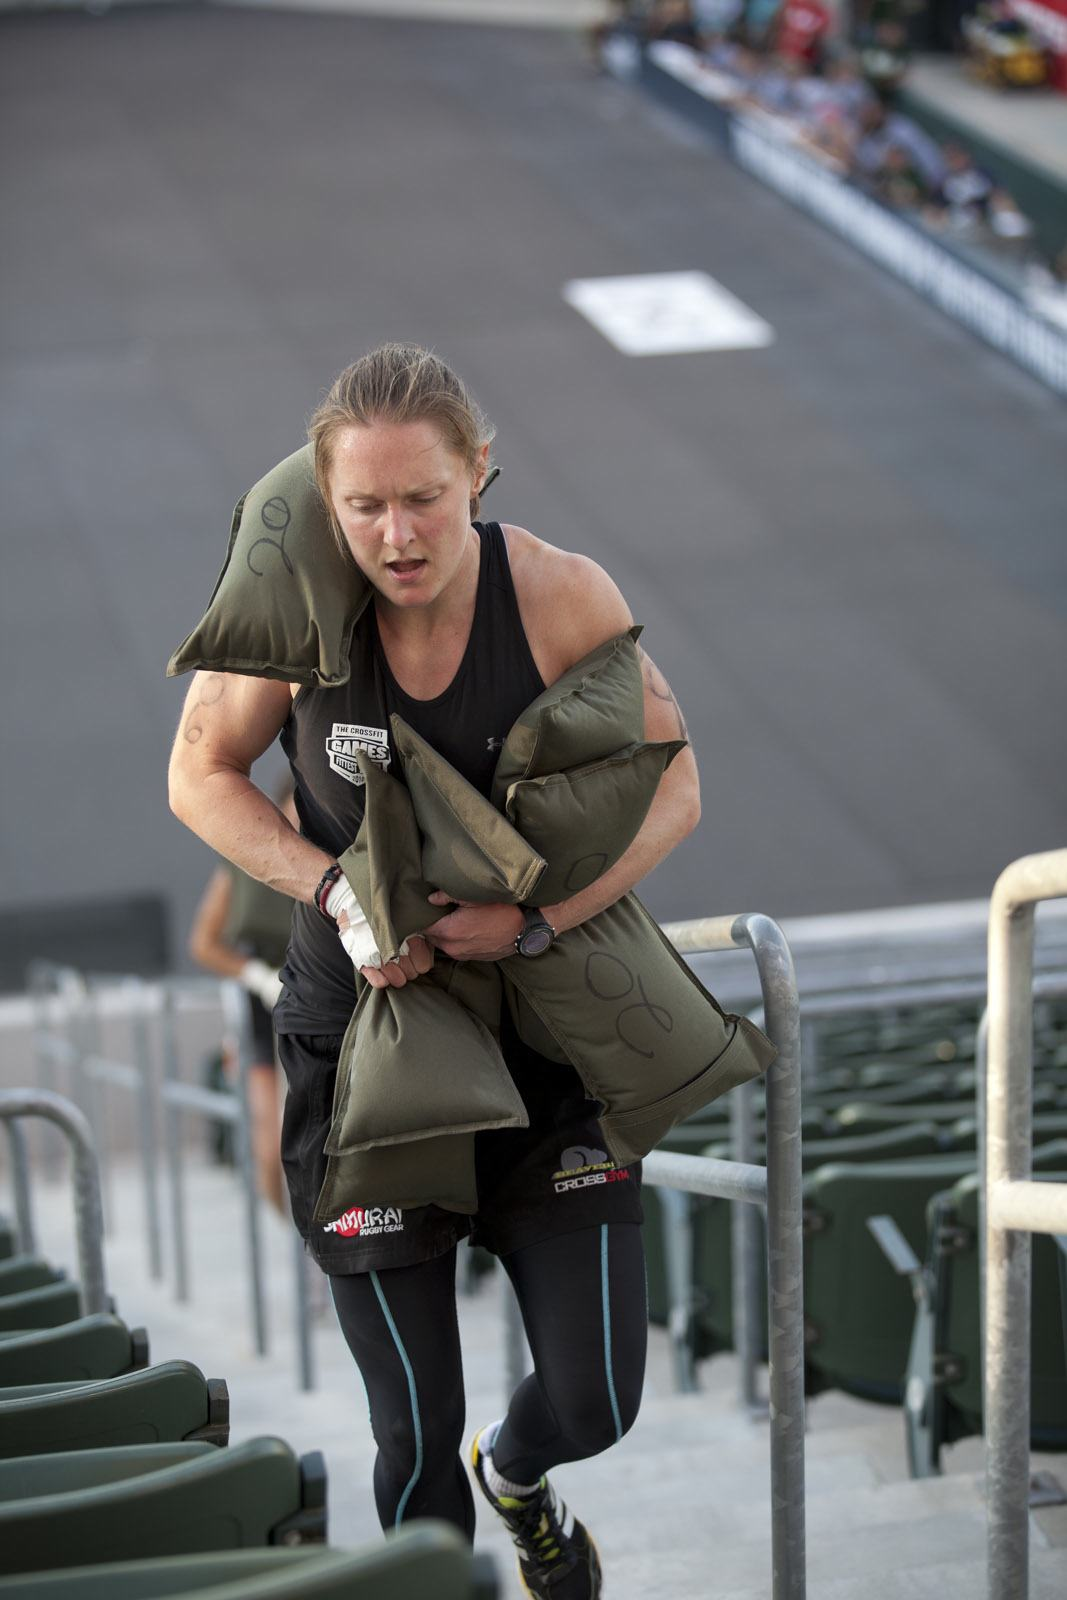 Samantha Briggs at the 2010 CrossFit Games